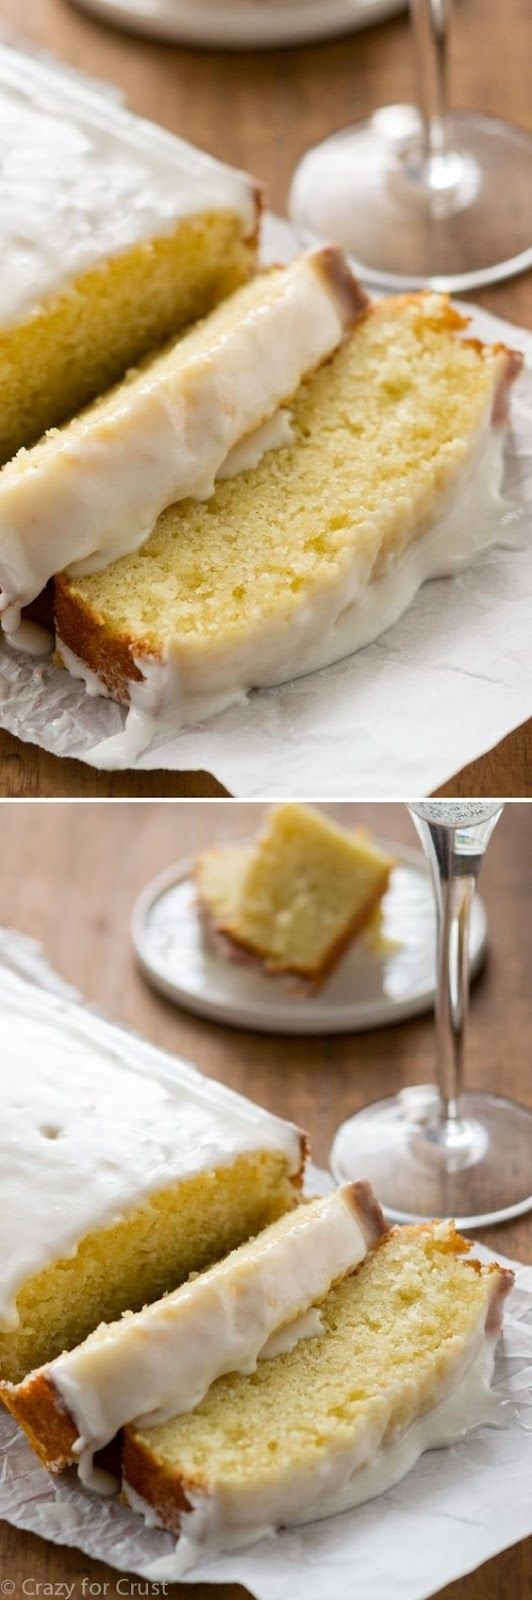 Champagne Pound Cake | That's hilarious about the Taylor Swift song. I had no idea either!